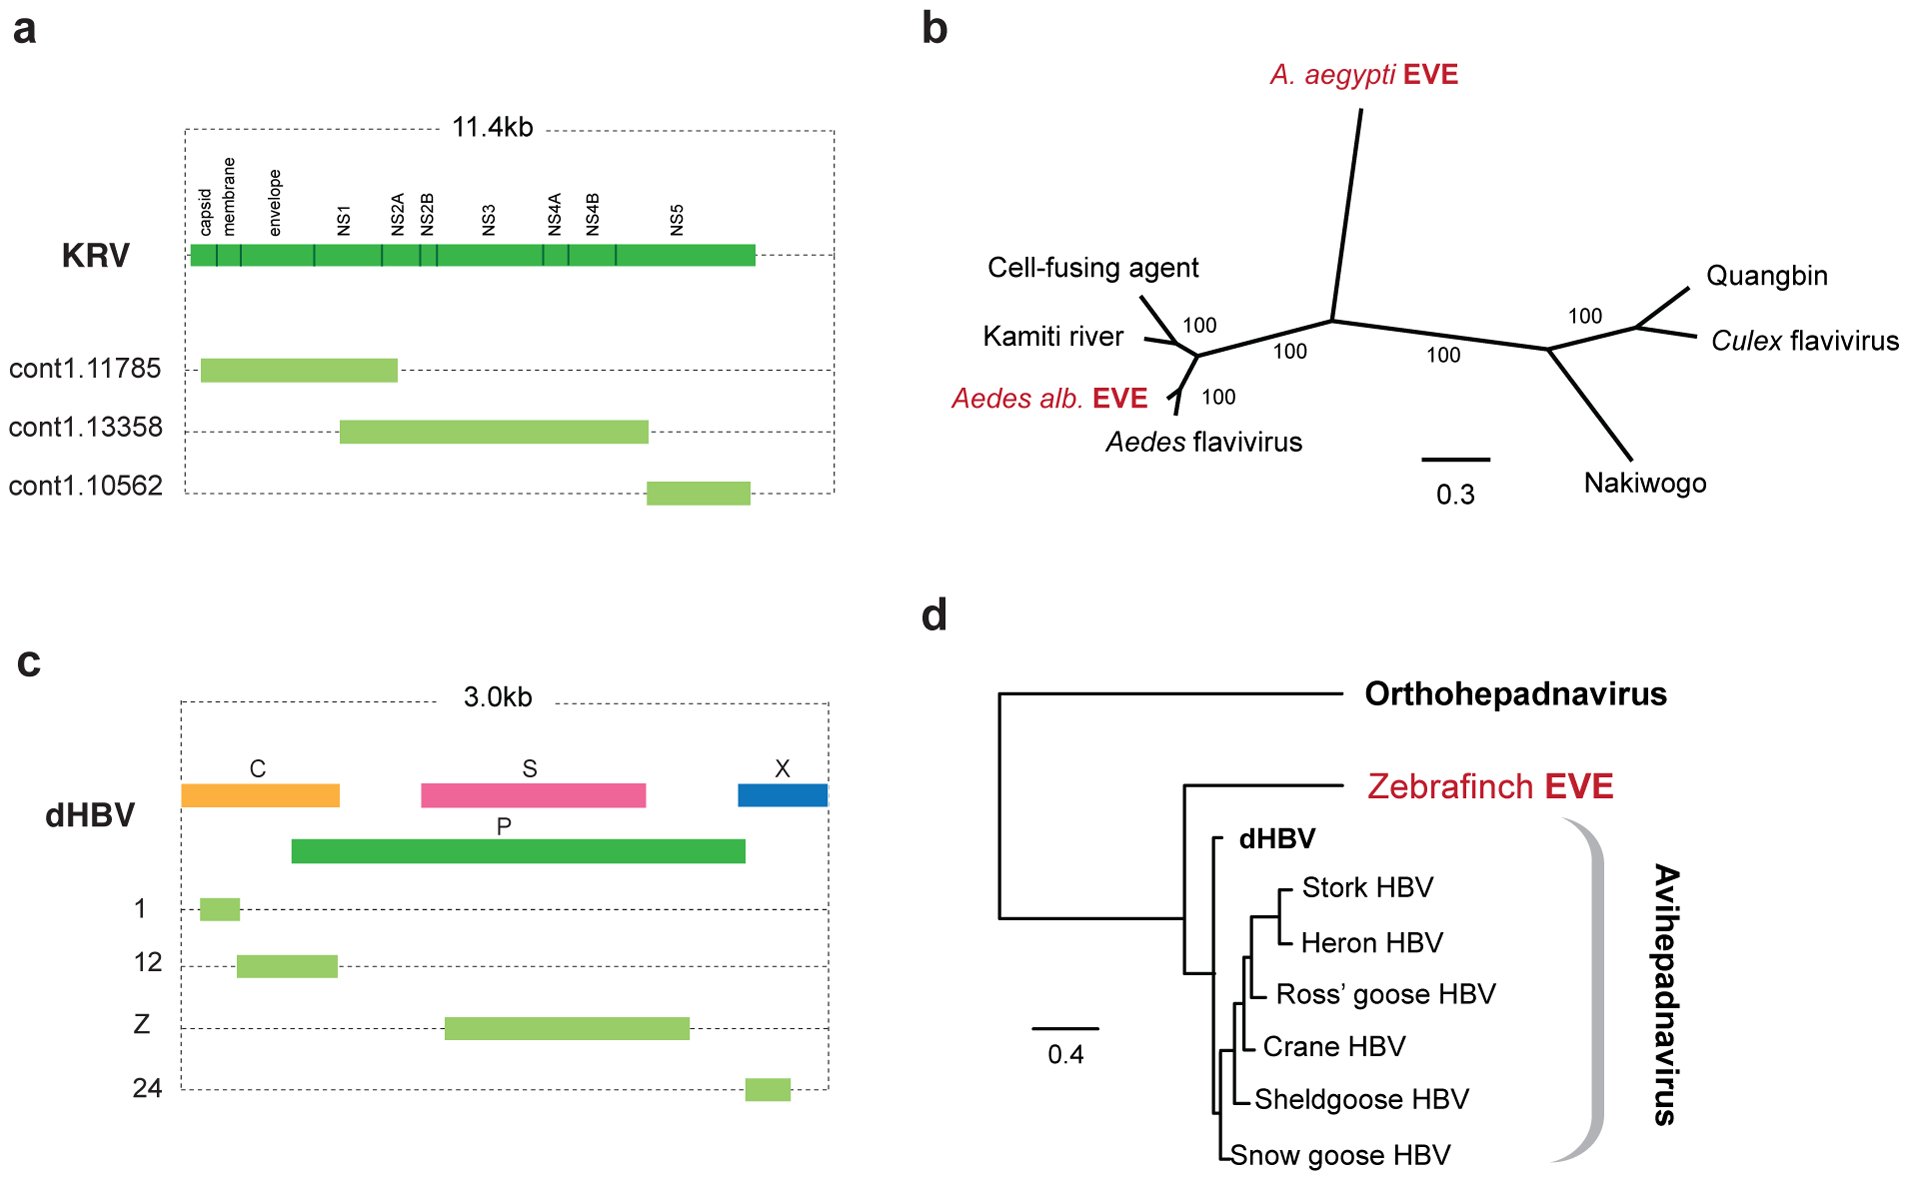 Genetic structures and phylogenetic relationships of EVEs related to flaviviruses and hepadnaviruses.